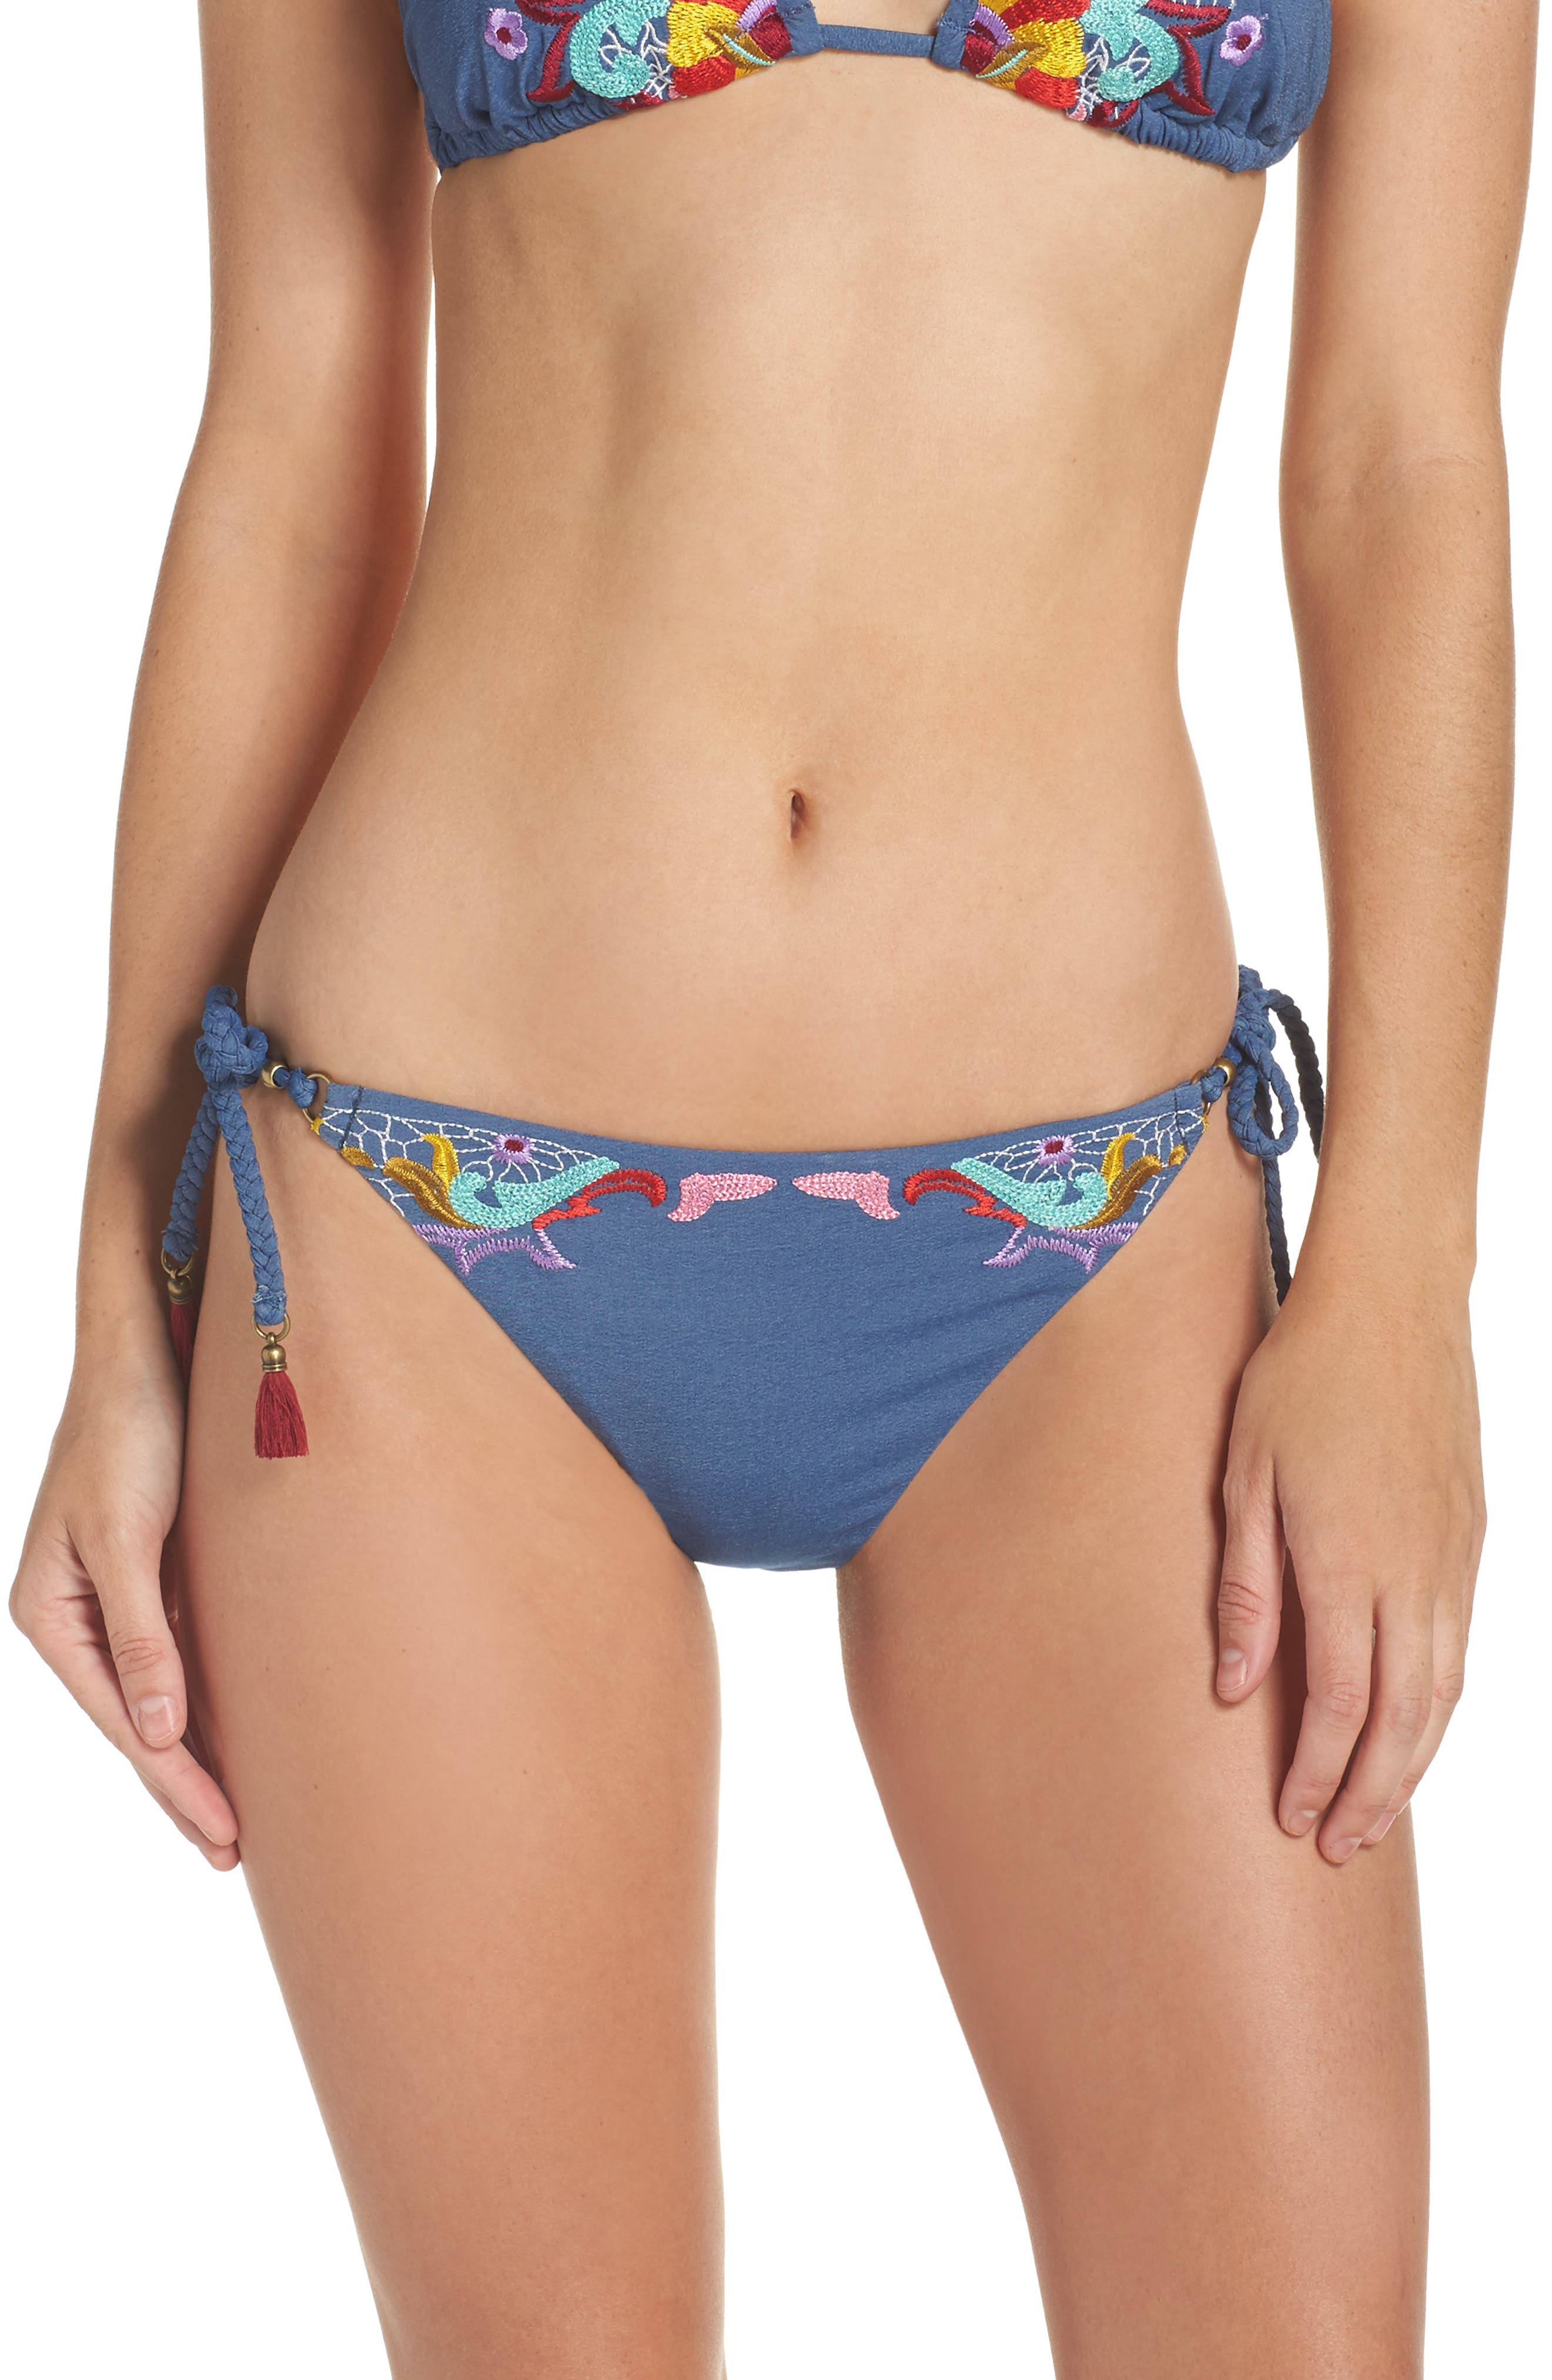 Dazed Denim Vamp Side Tie Bikini Bottoms,                             Main thumbnail 1, color,                             Blue Multi